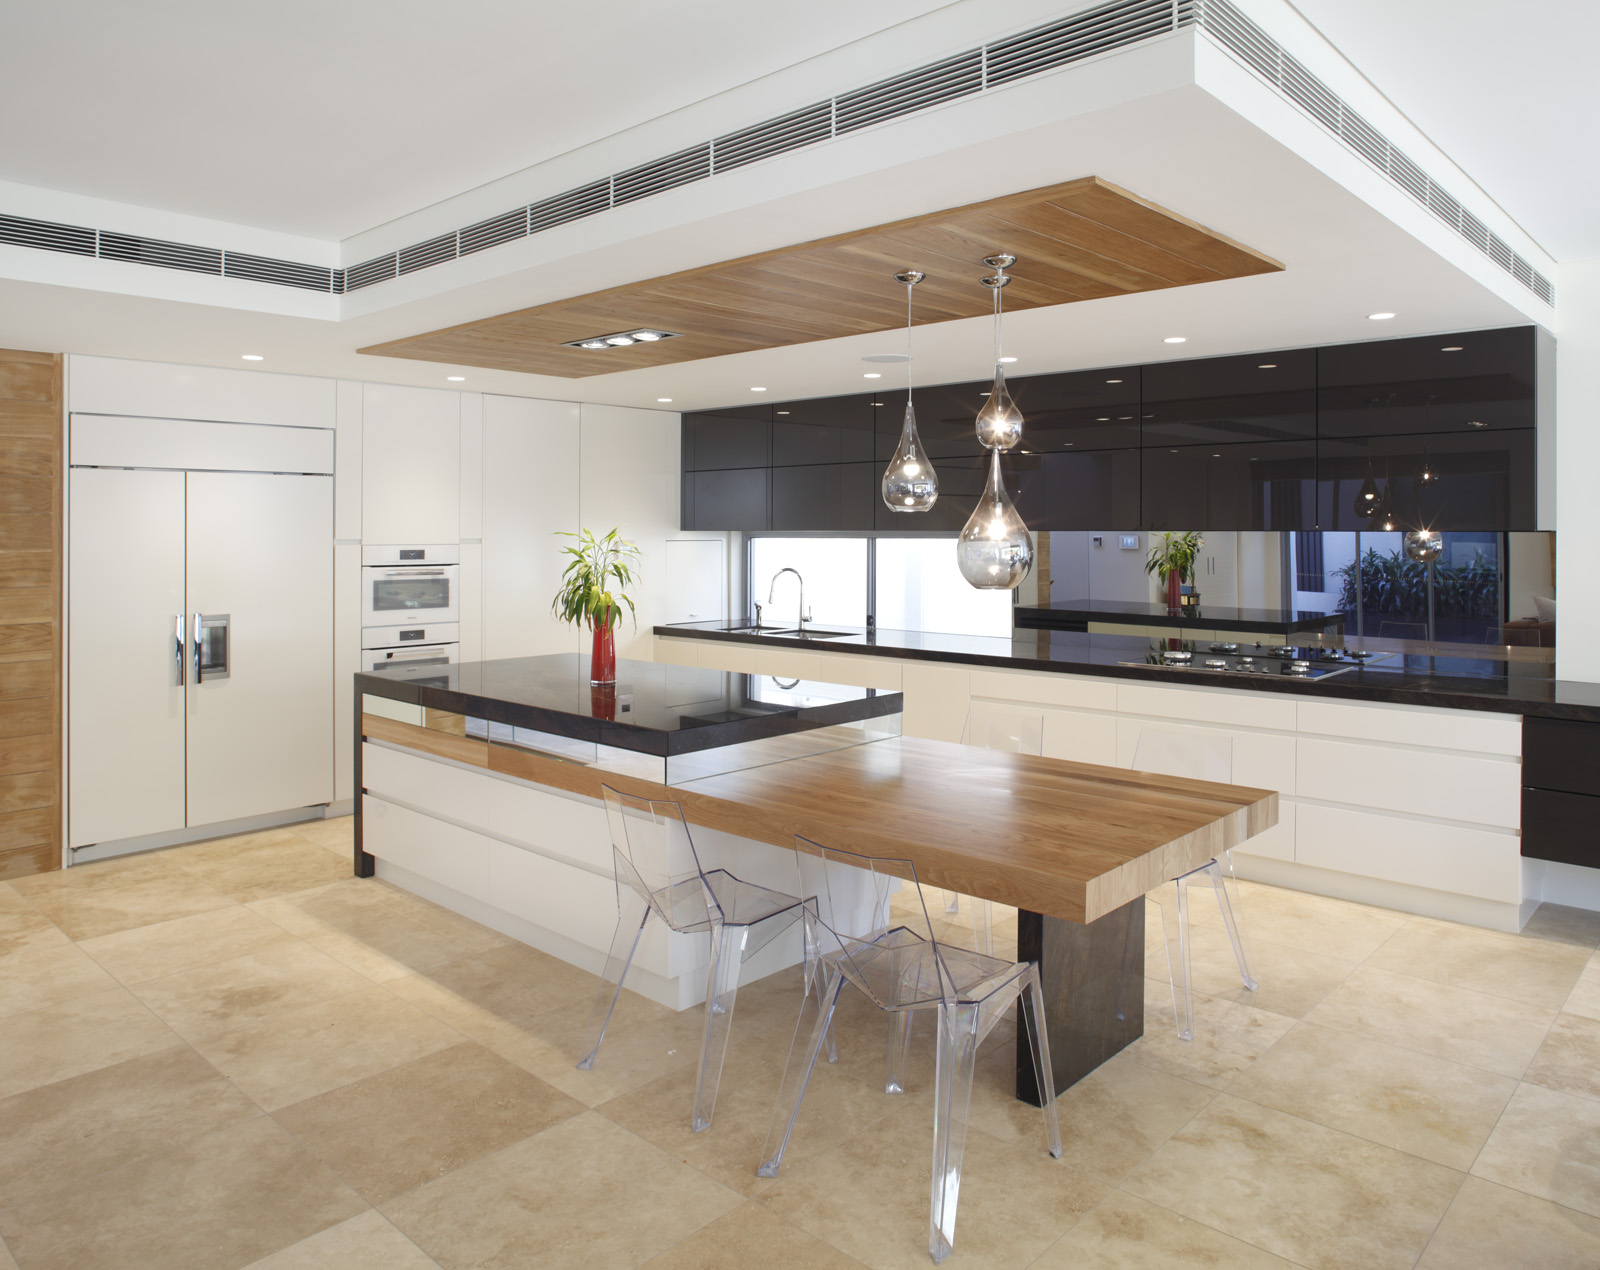 Why Use Pendant Lights For Kitchen Lighting? Wonderful